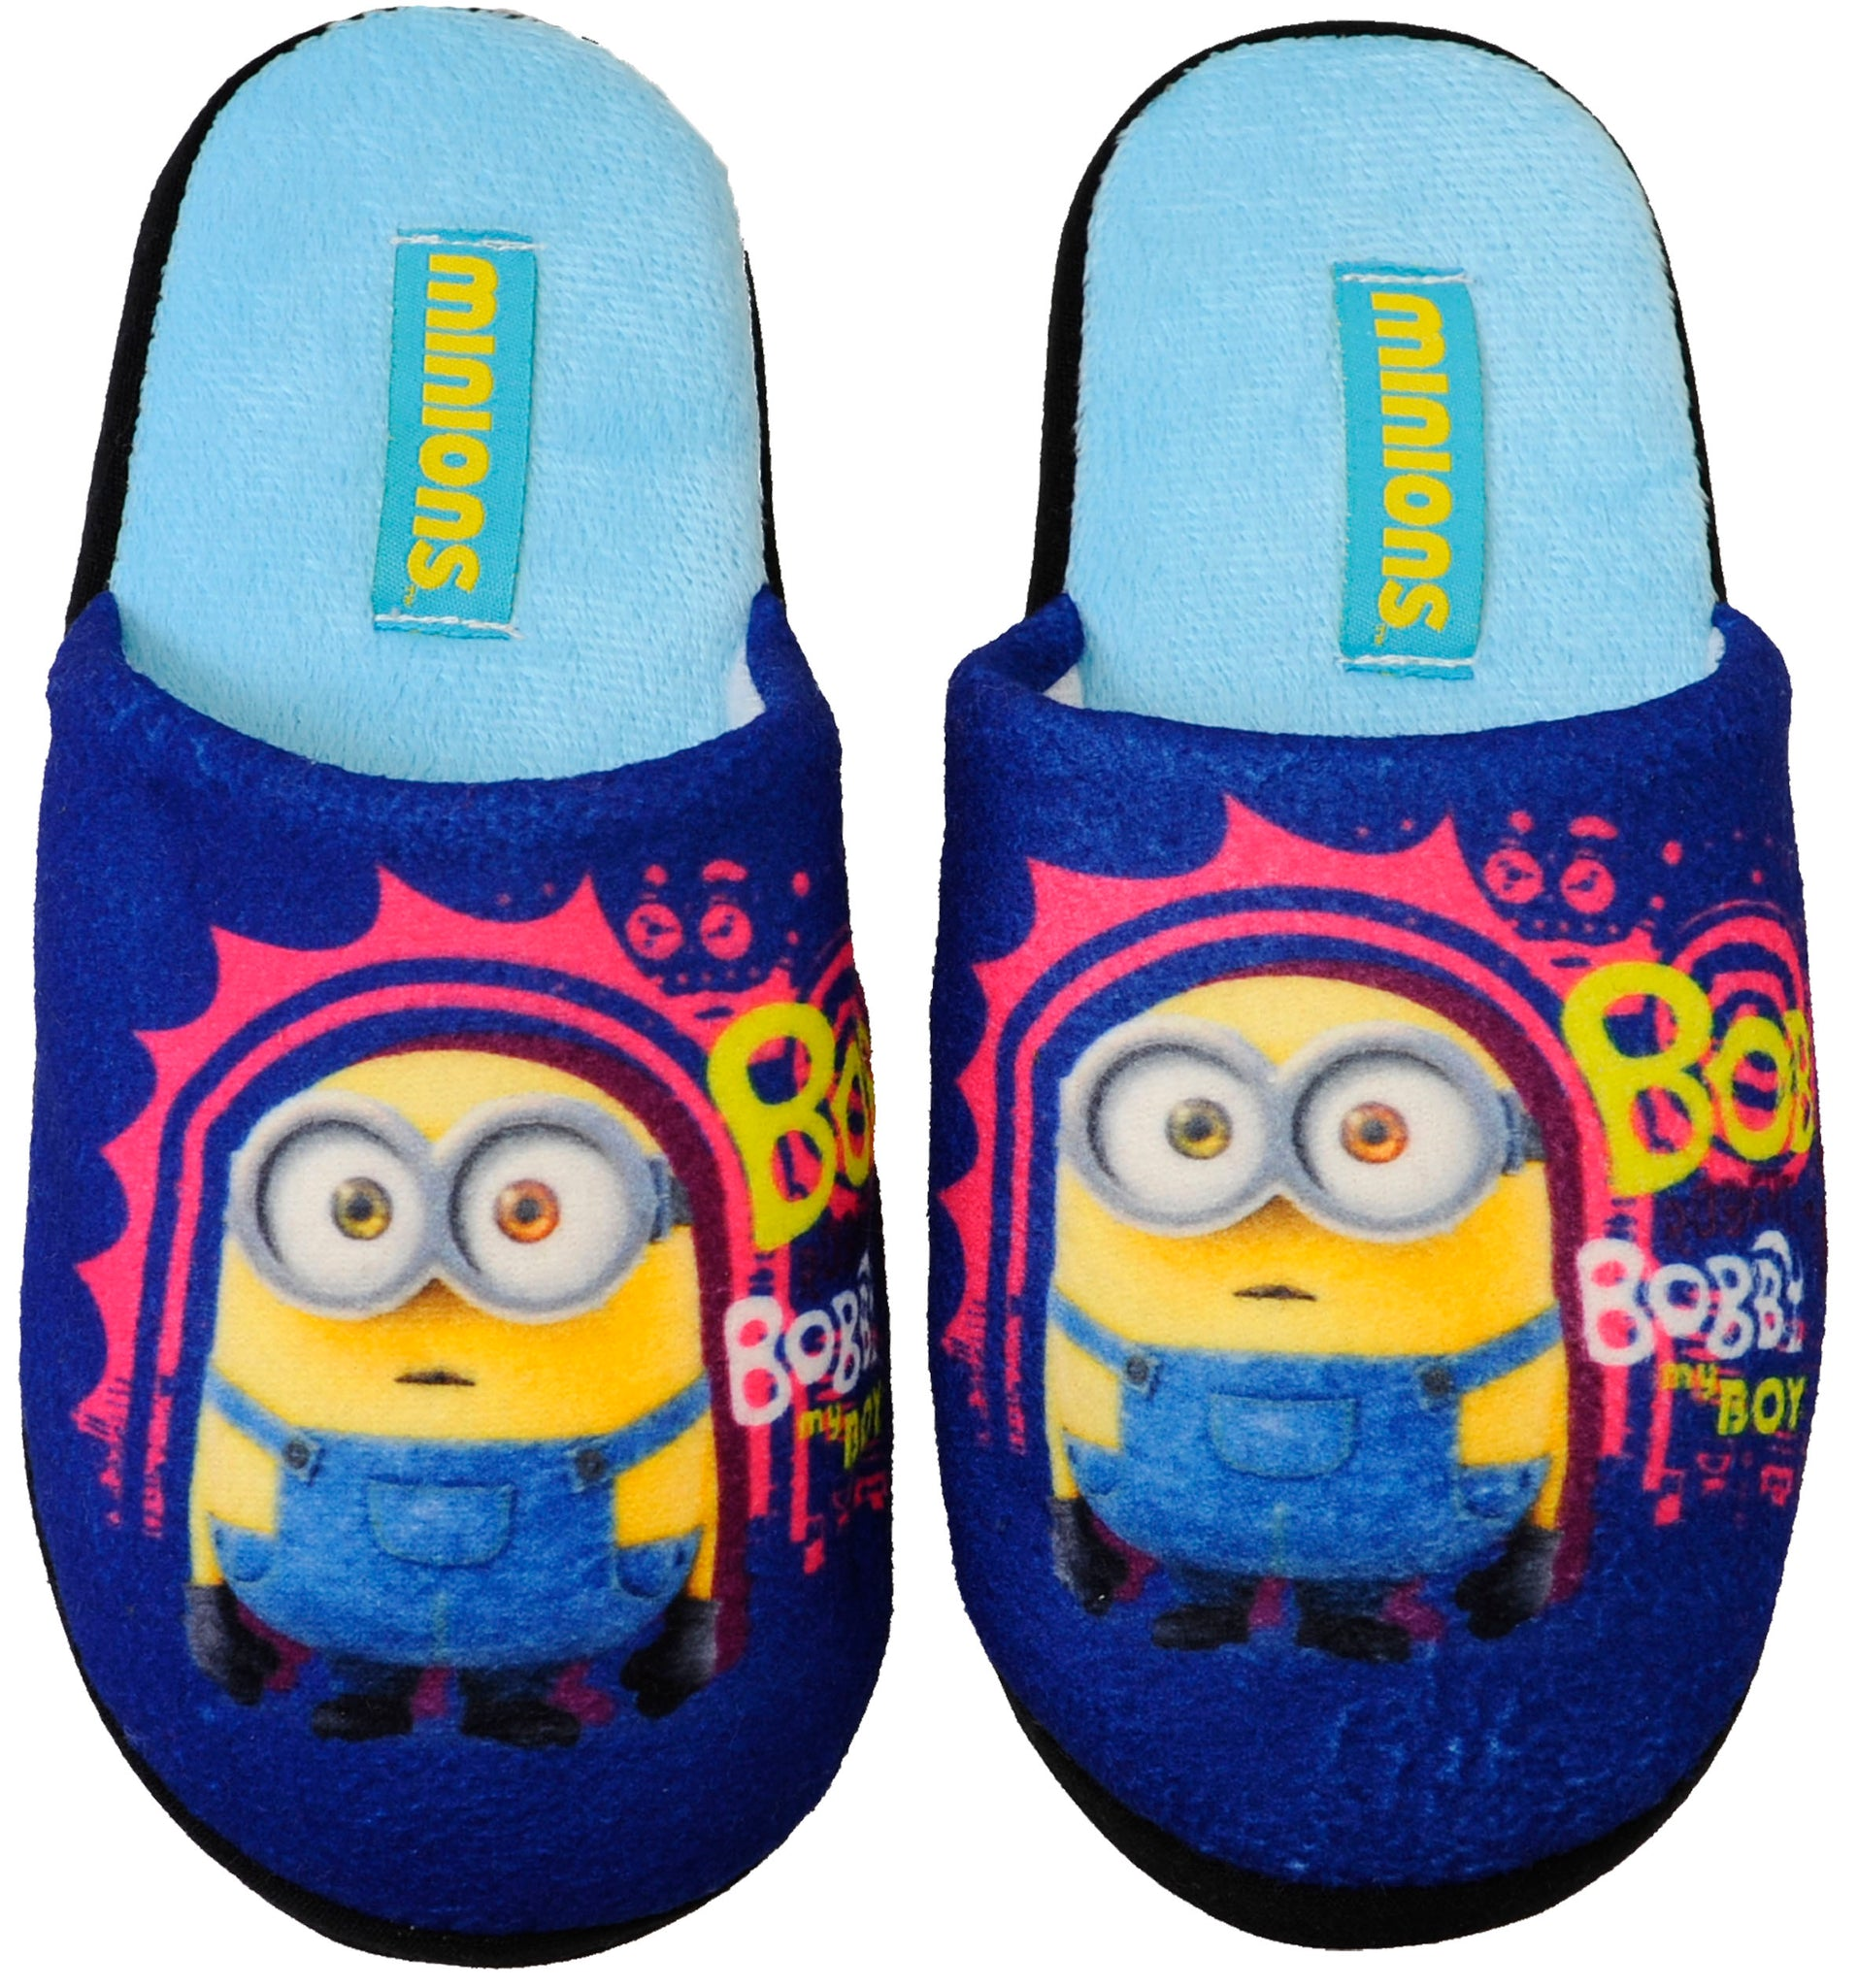 Minions Agnes design slippers